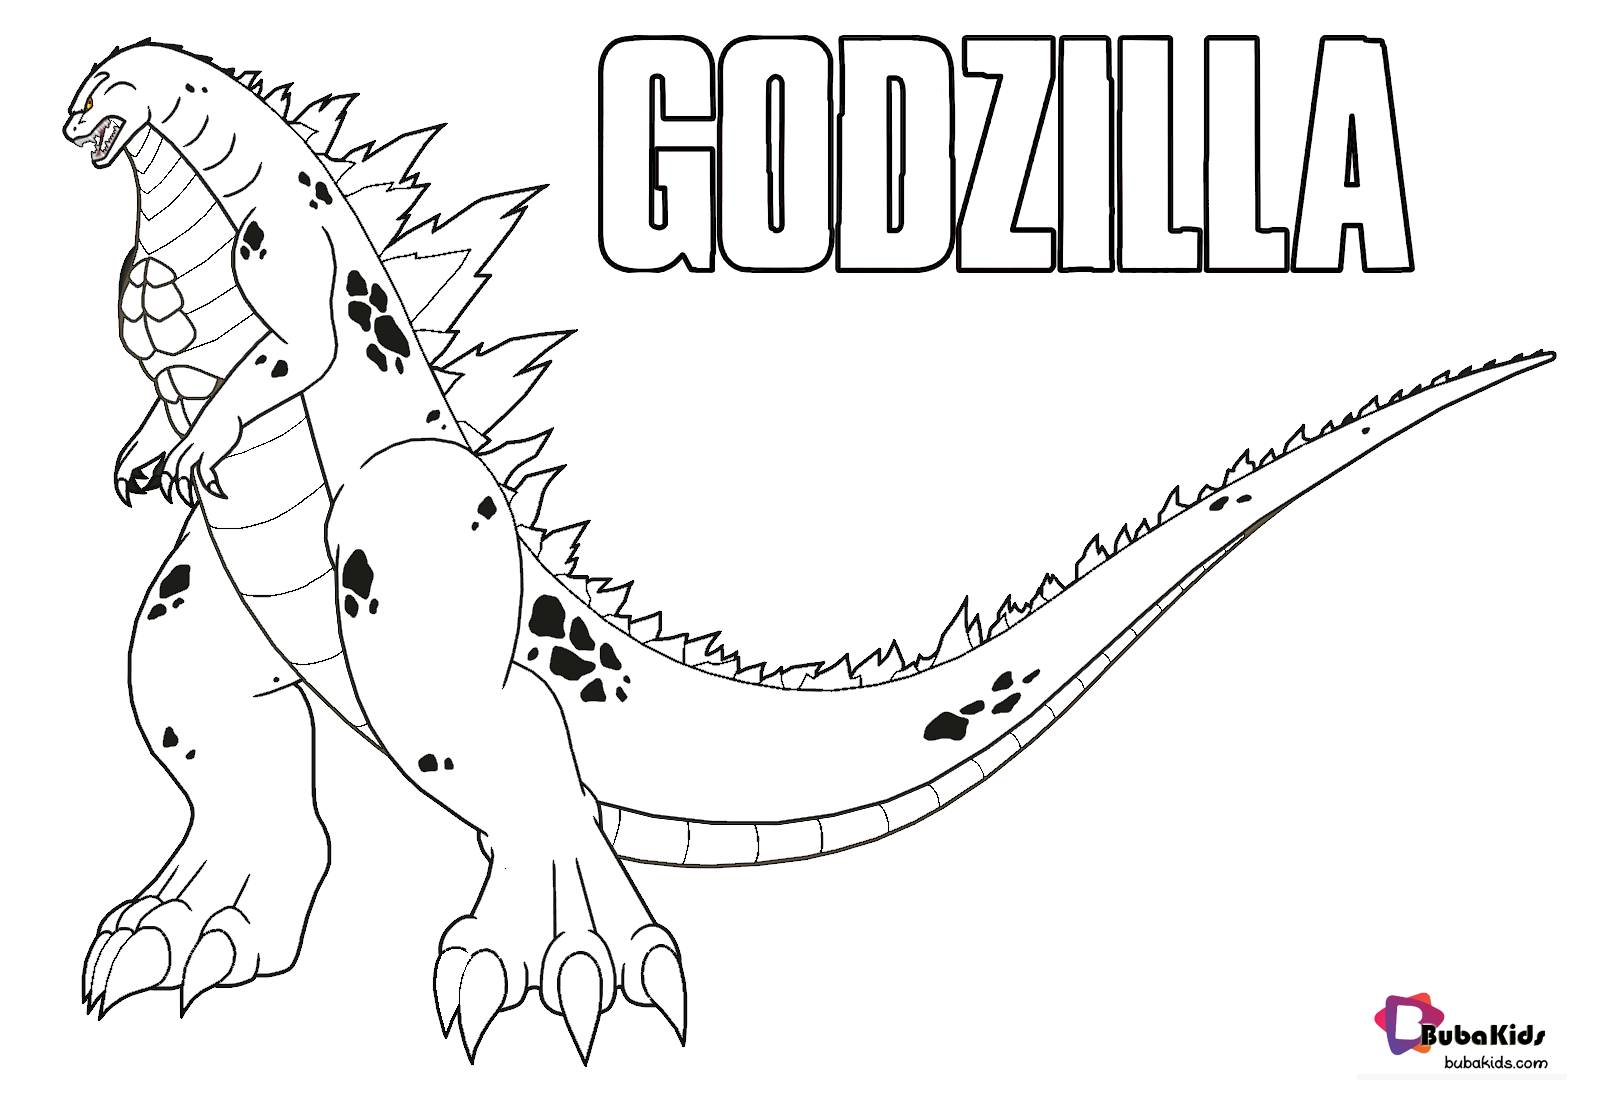 Free Printable Godzilla Coloring Pages For Kids Godzilla King Of Monsters Godzilla Kingofmon Coloring Pages For Kids Monster Coloring Pages Coloring Pages